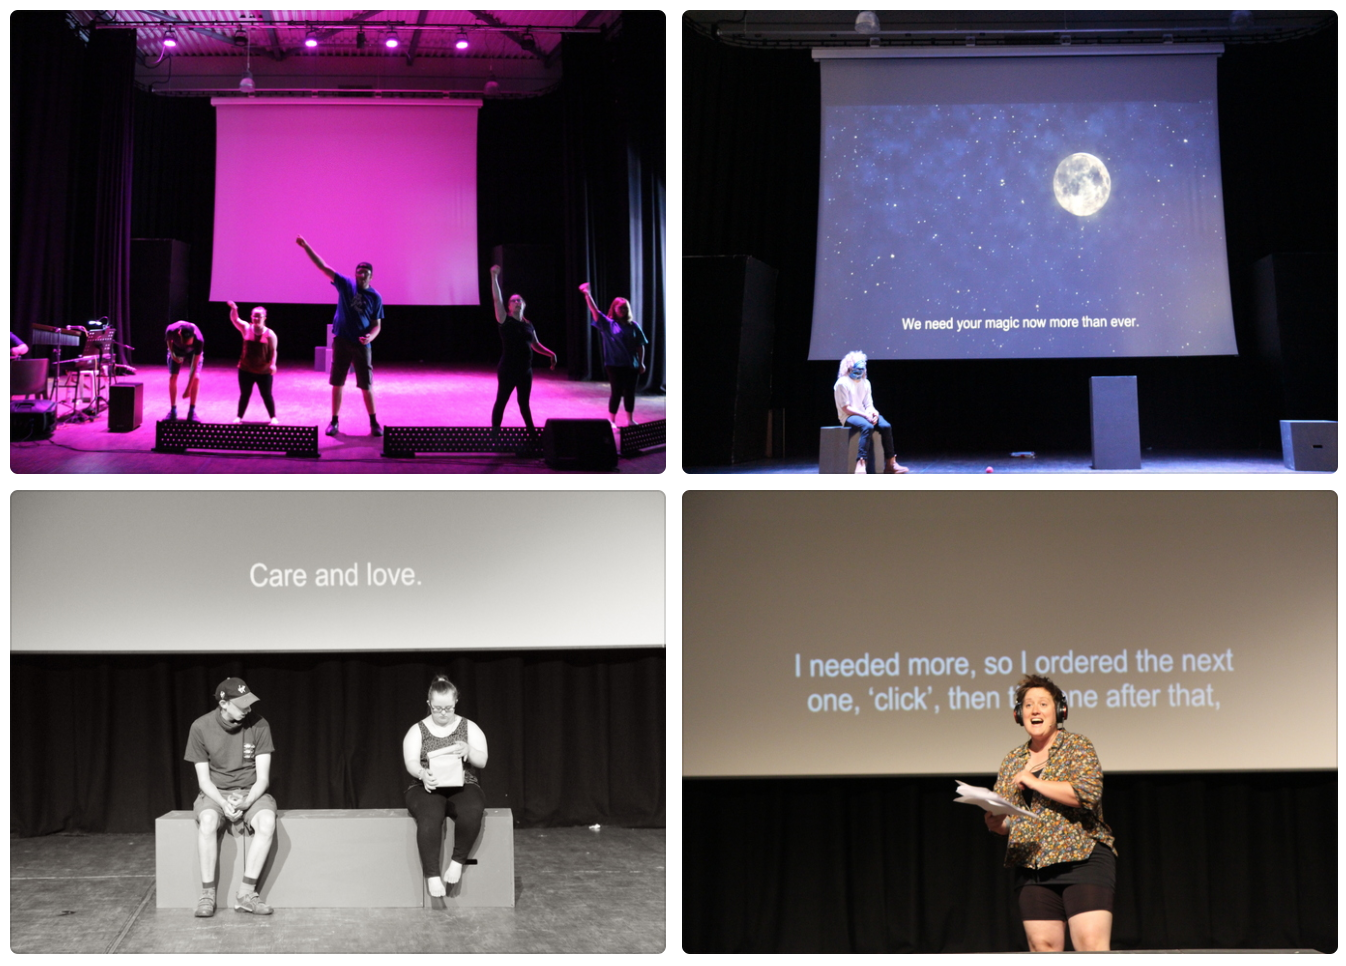 Four photos of Till We Win rehearsals. Top left: a group of young people with their fist raised in the air in protest and victory. Top right: a performer sat on a cube on the lefthand side of the stage. Behind them, a screen shows a moon in a clear night sky and captions: 'We need your magic now more than ever.'. Bottom left: two performers sat on a block-bench on stage/ On of them is reading a letter. Behind them, a caption on the screen reads: 'Care and love.'. Bottom left: A woman in her thirties with a glittery gold top and short hair wears headphones and reads from a script. Behind her, captions on the screen read: 'I needed more, so I ordered the next one, 'click', then the one after that,'.